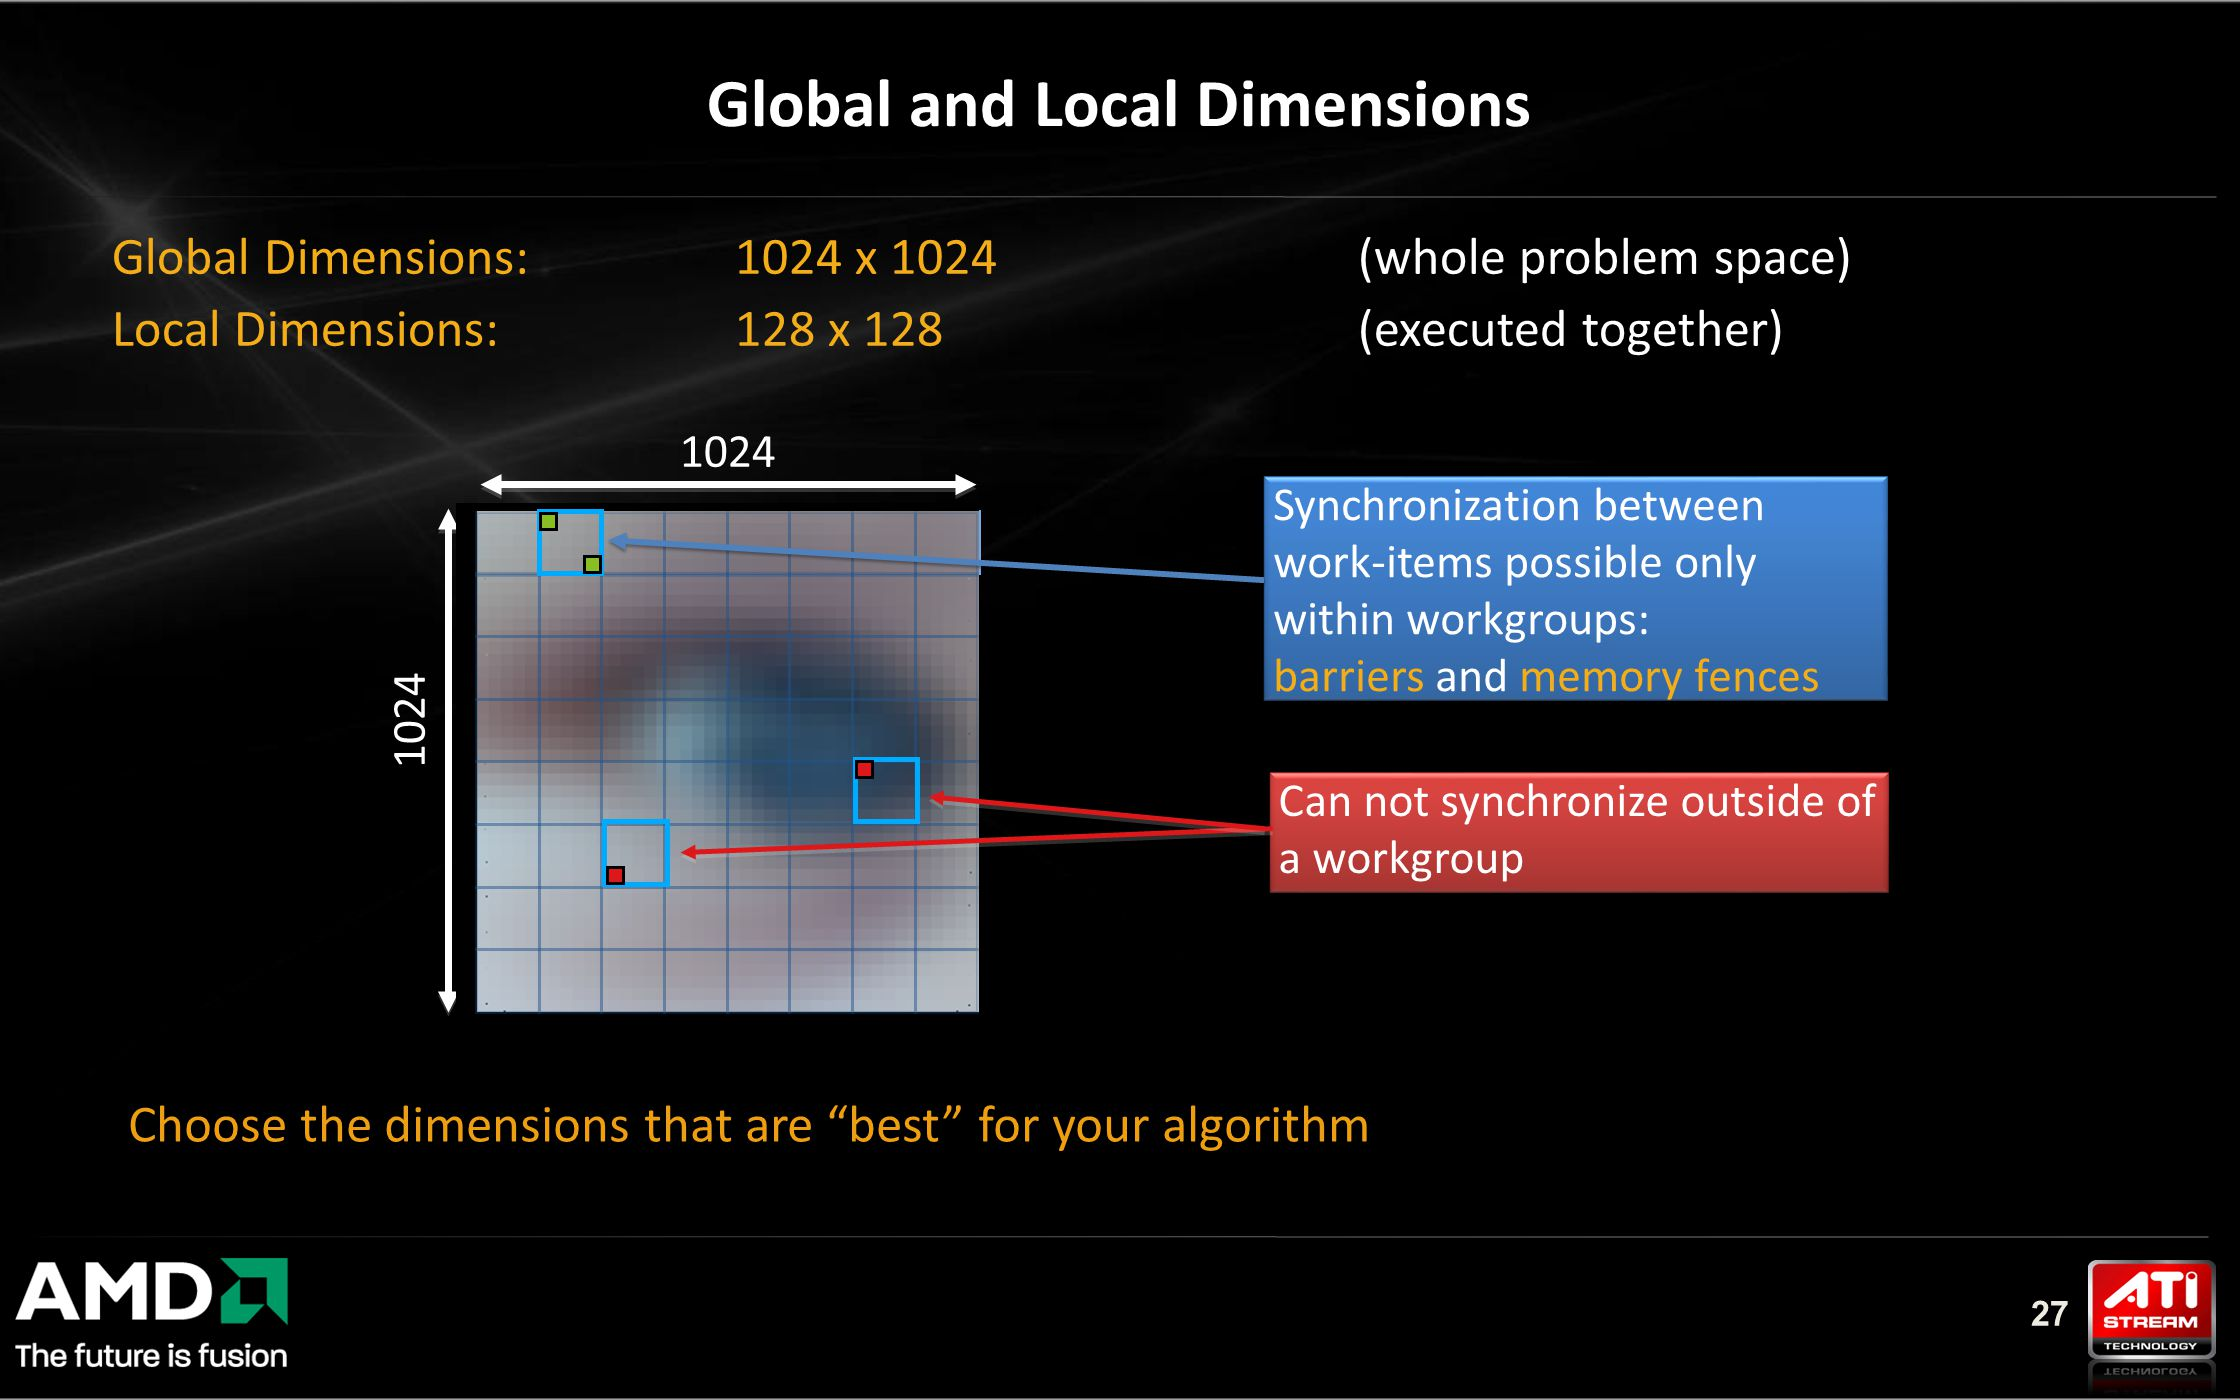 27 Global Dimensions: 1024 x 1024 (whole problem space) Local Dimensions: 128 x 128 (executed together) Global and Local Dimensions 1024 Synchronization between work-items possible only within workgroups: barriers and memory fences Synchronization between work-items possible only within workgroups: barriers and memory fences Can not synchronize outside of a workgroup Choose the dimensions that are best for your algorithm